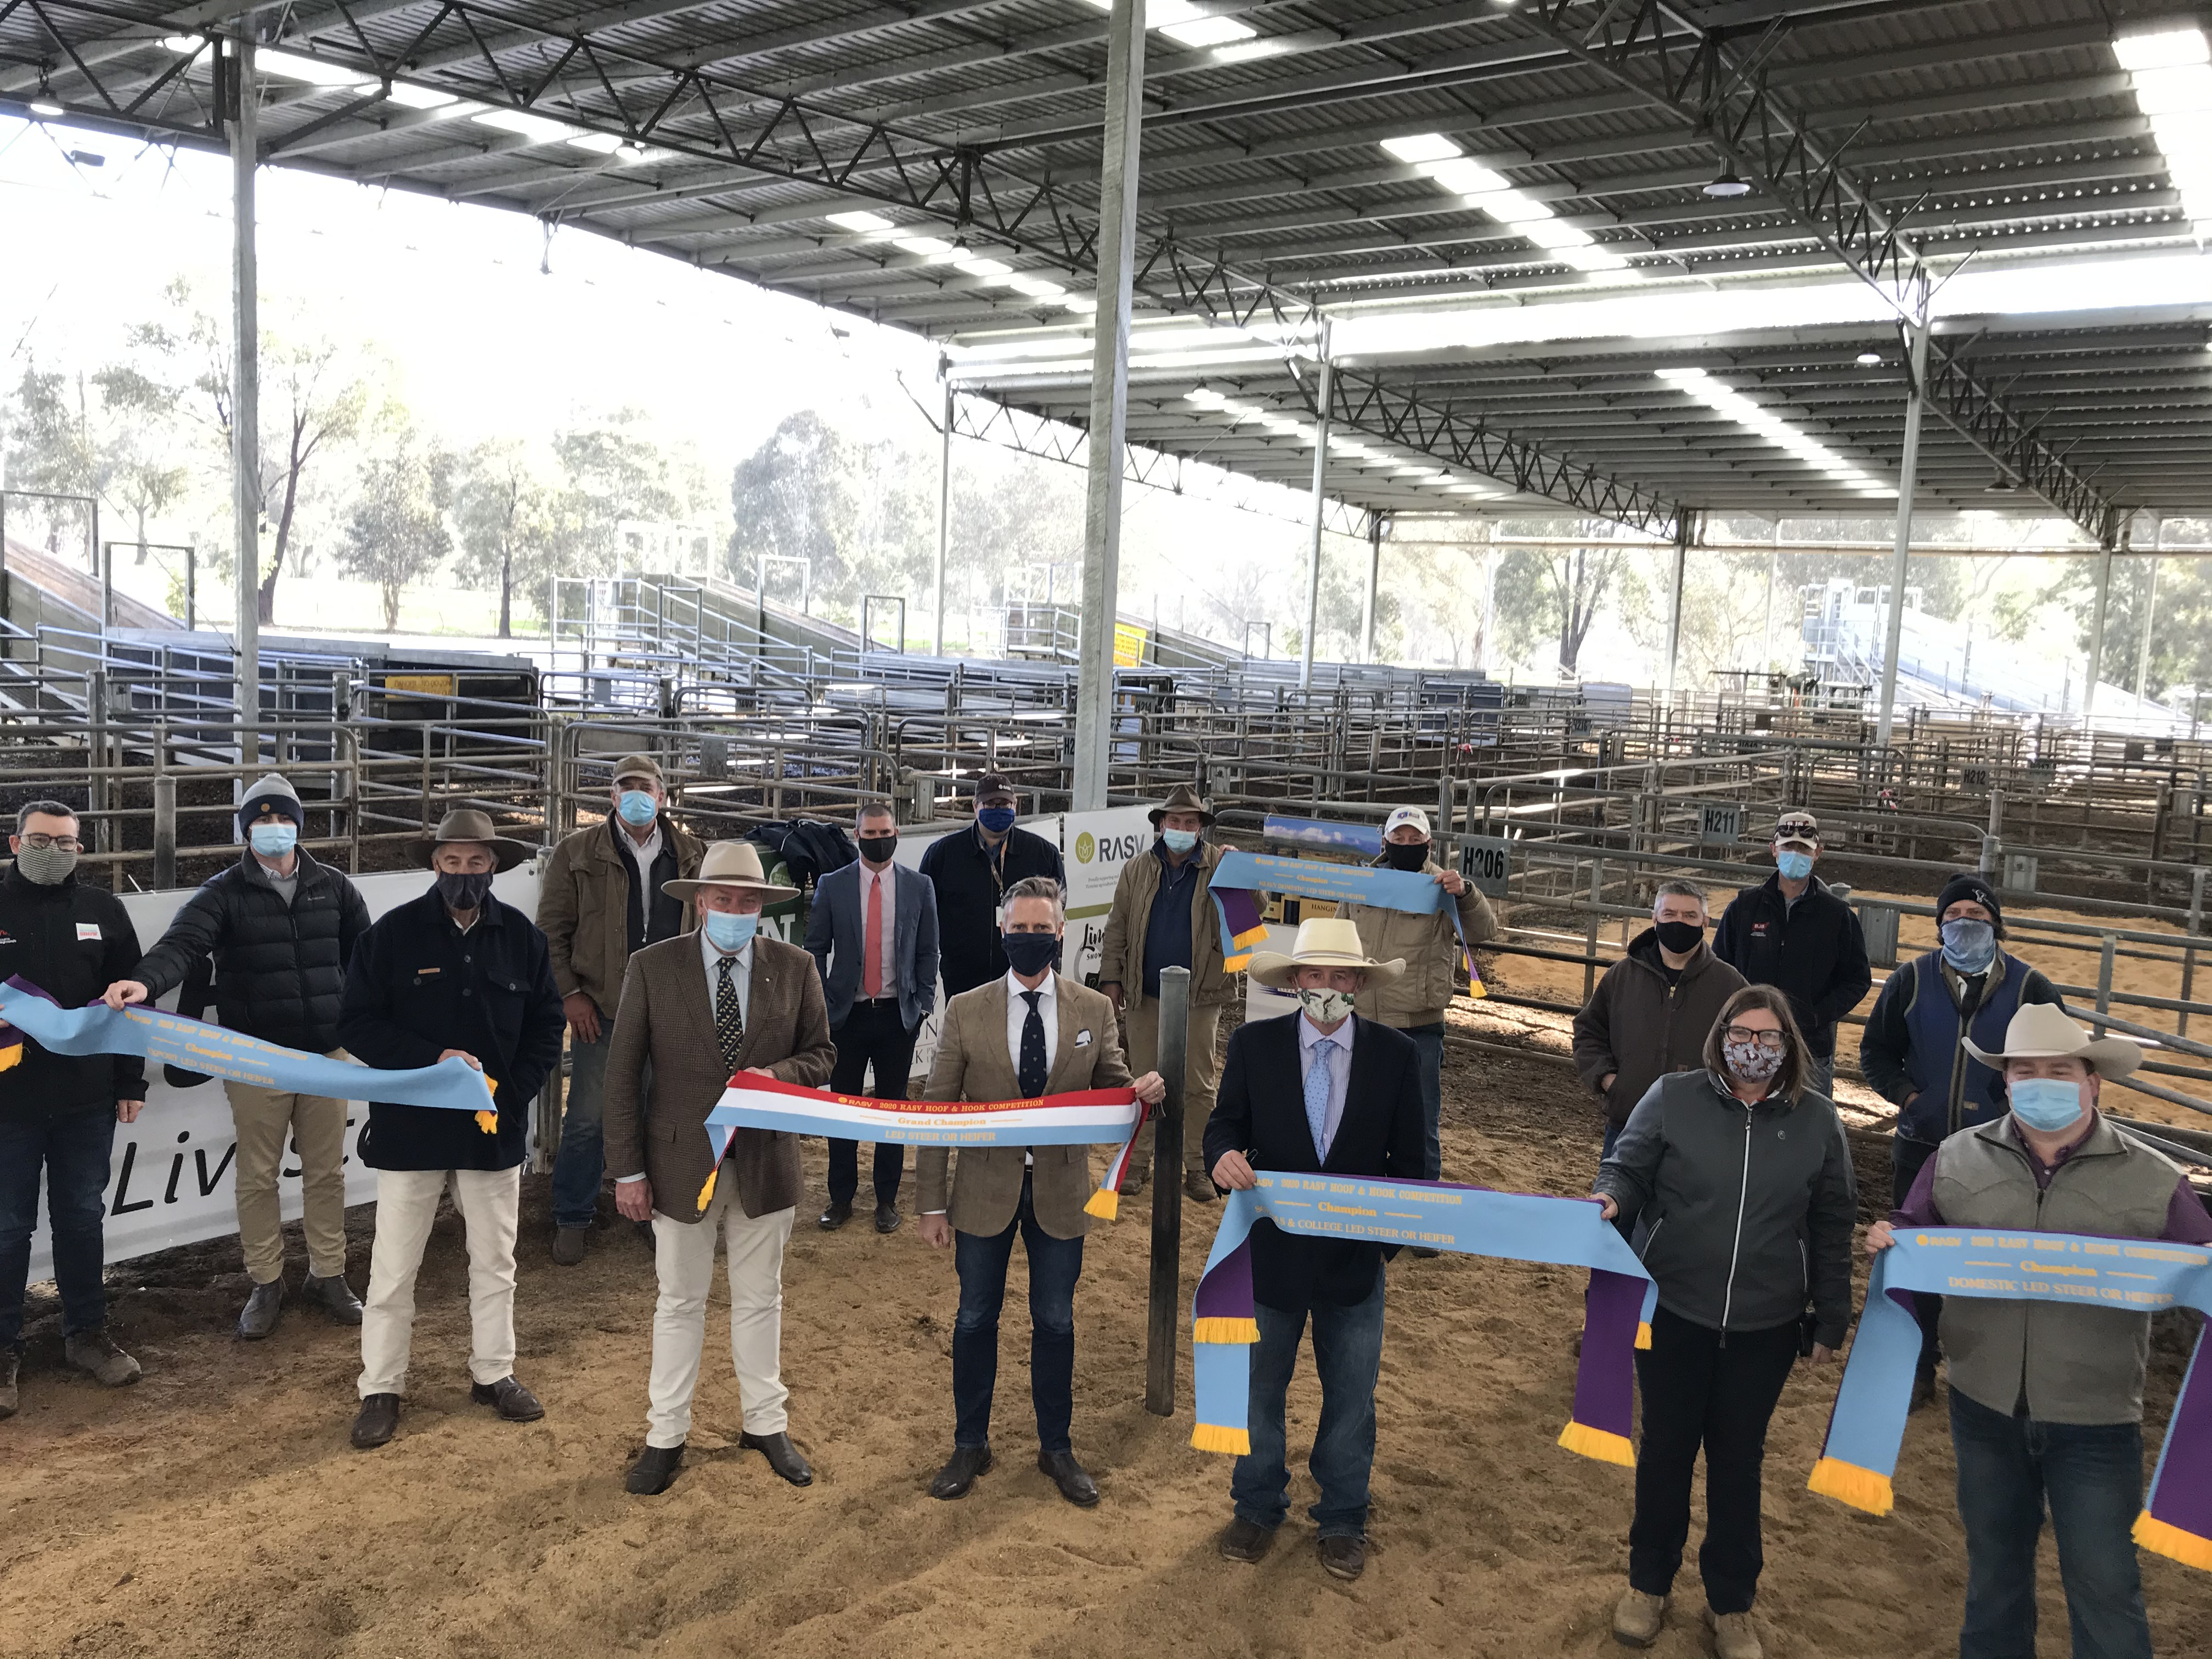 RASV Hoof and Hook Competition judged at Yea Saleyards. September 26, 2020